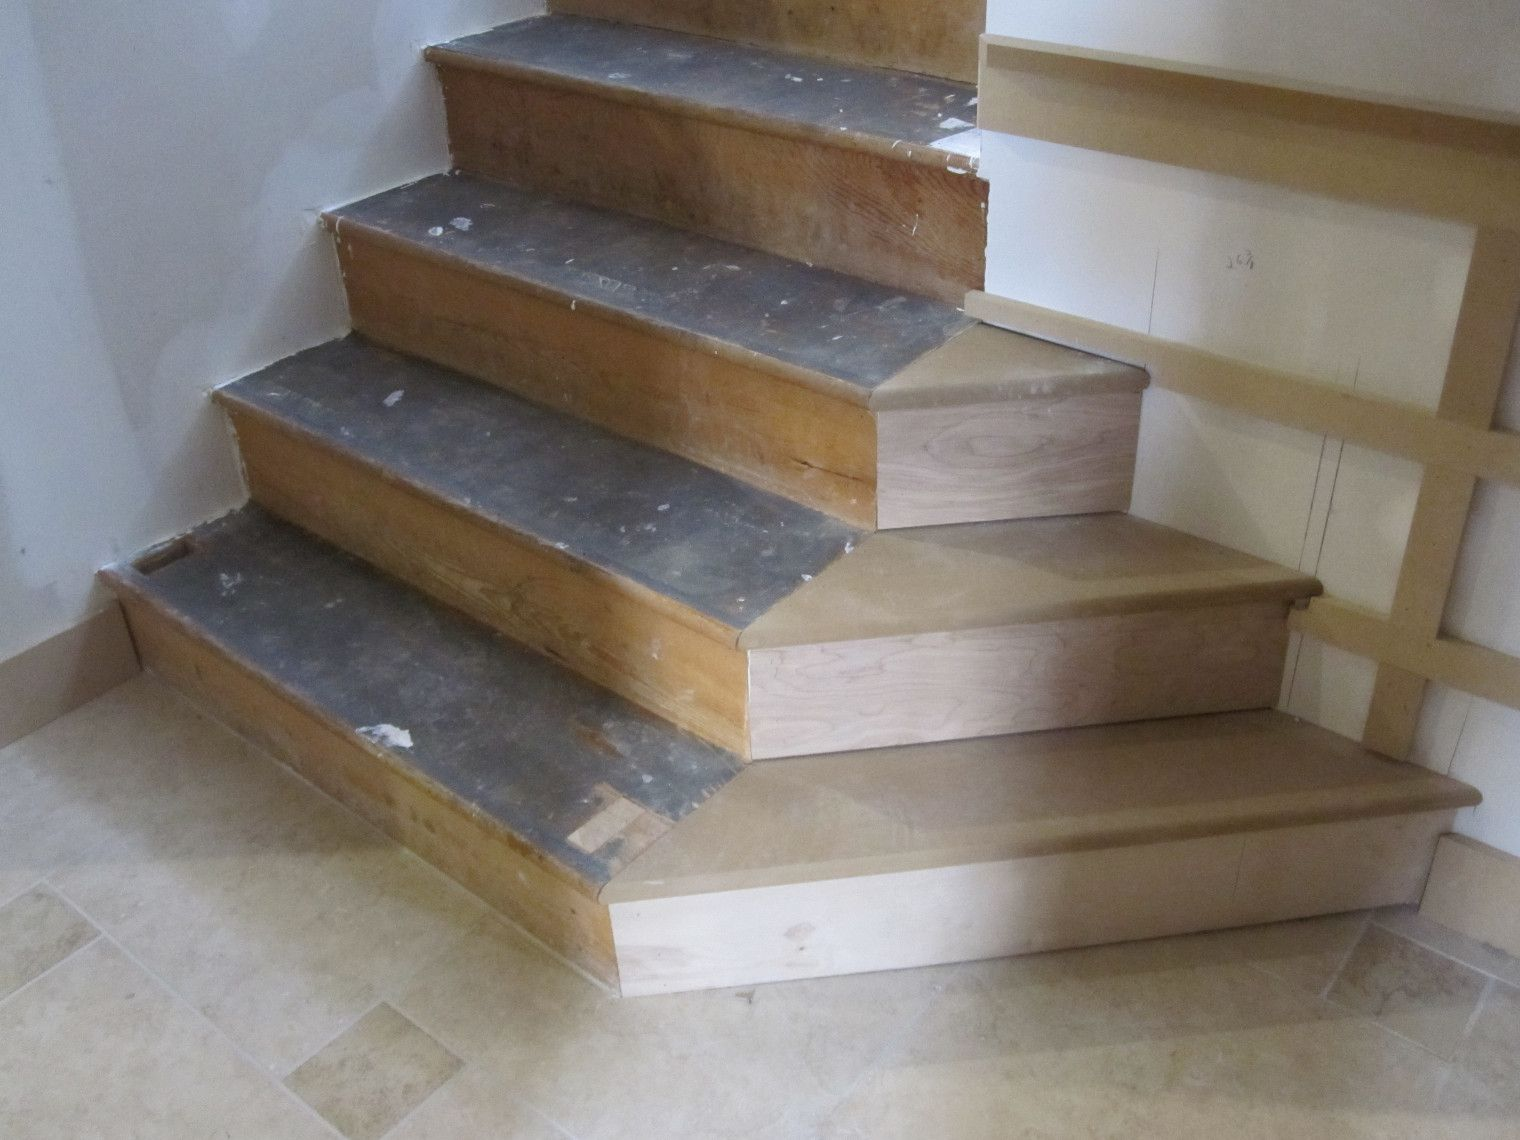 Refinishing Basement Stairs Stair Redo With Painted Treads And Beadboard Risers Basement